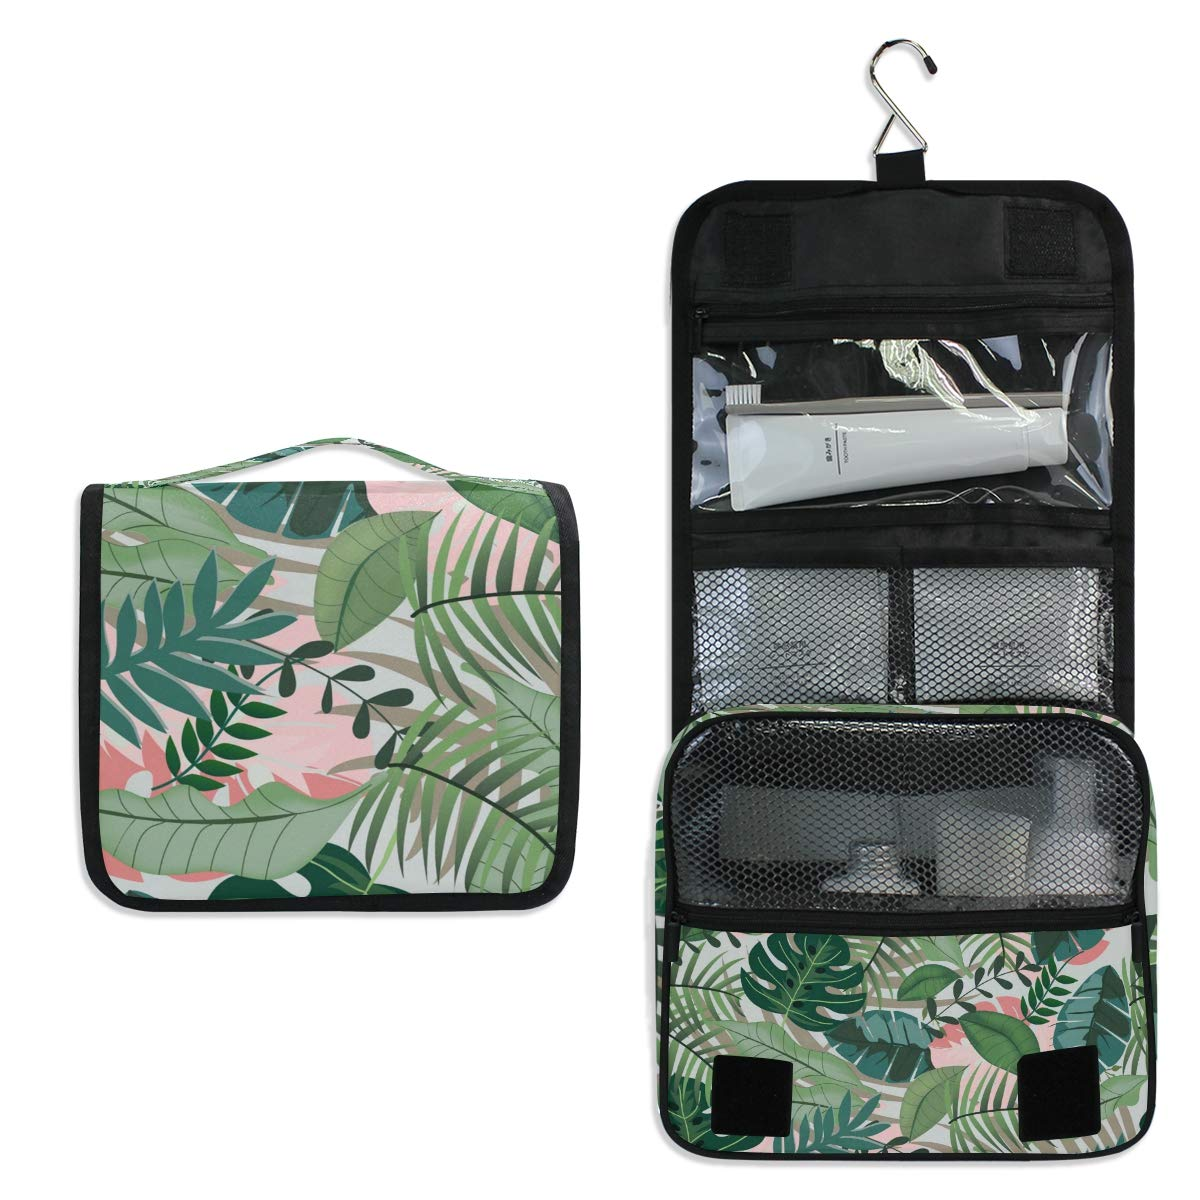 Toiletry Bag Travel Bag Hanging Hook - Tropical Jungle Waterproof Cosmetic Bag Portable Makeup Pouch for Women Girls Men